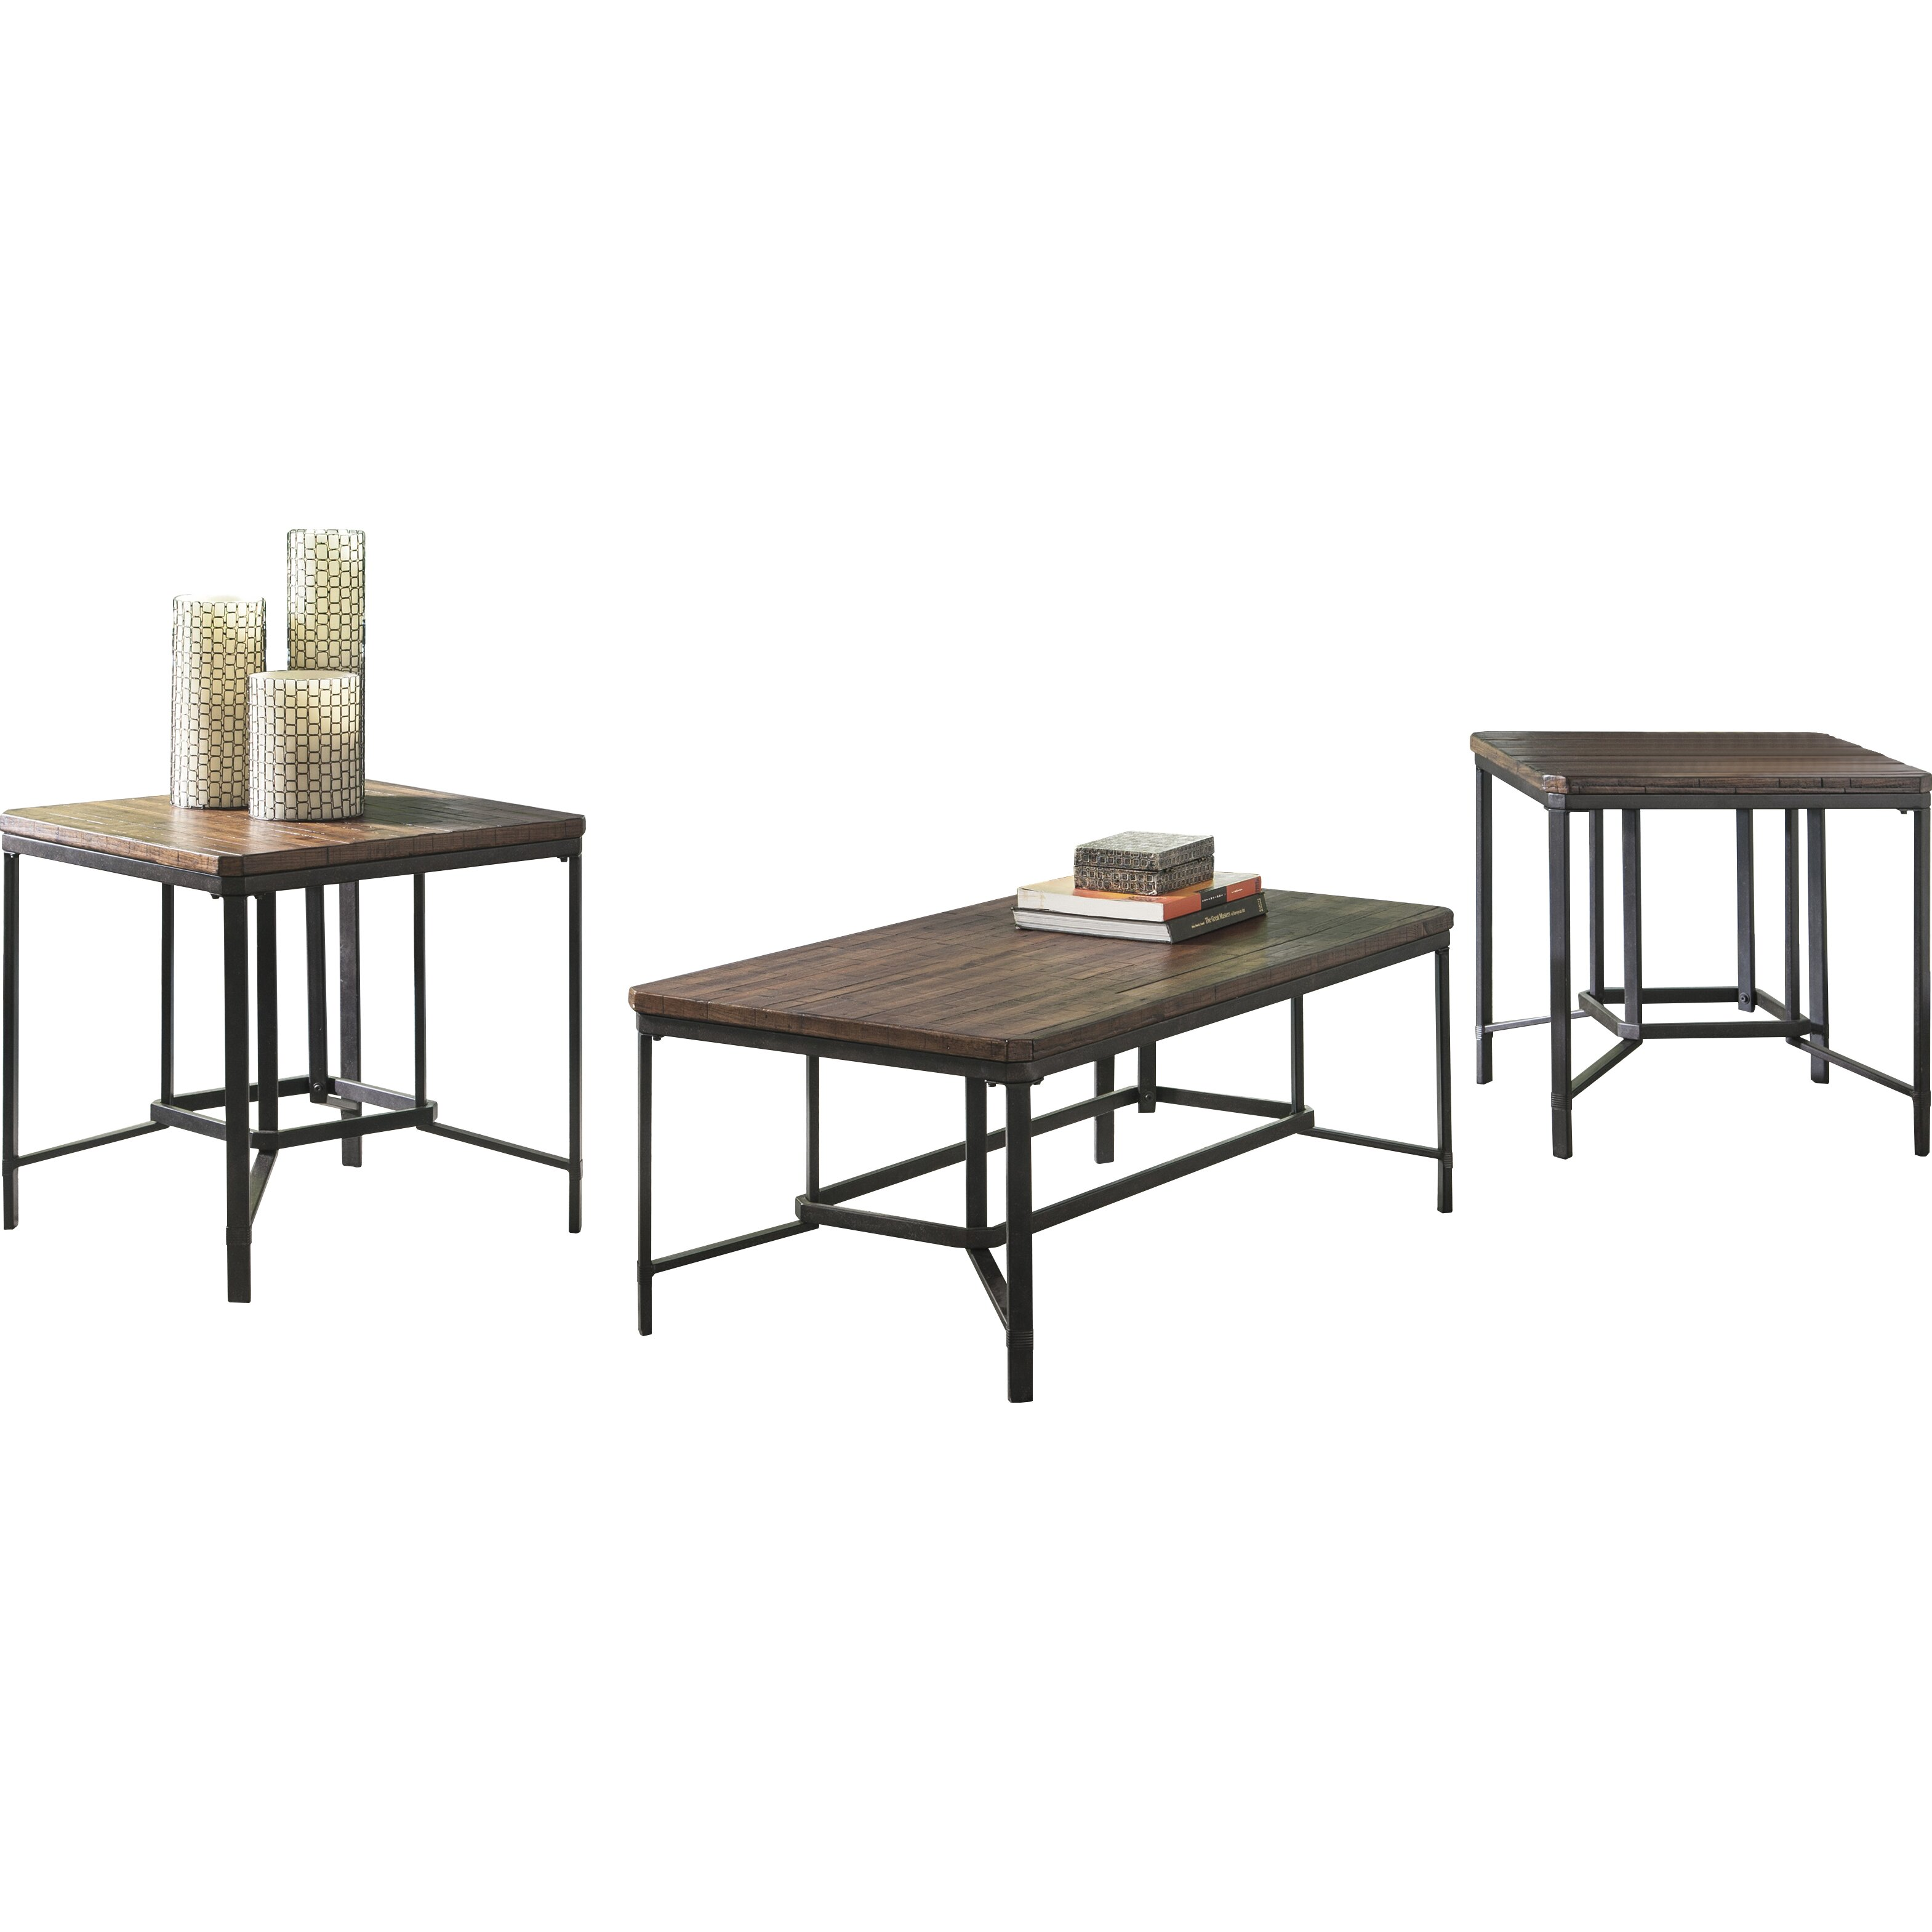 Signature Design by Ashley Newelk 3 Piece Coffee Table Set